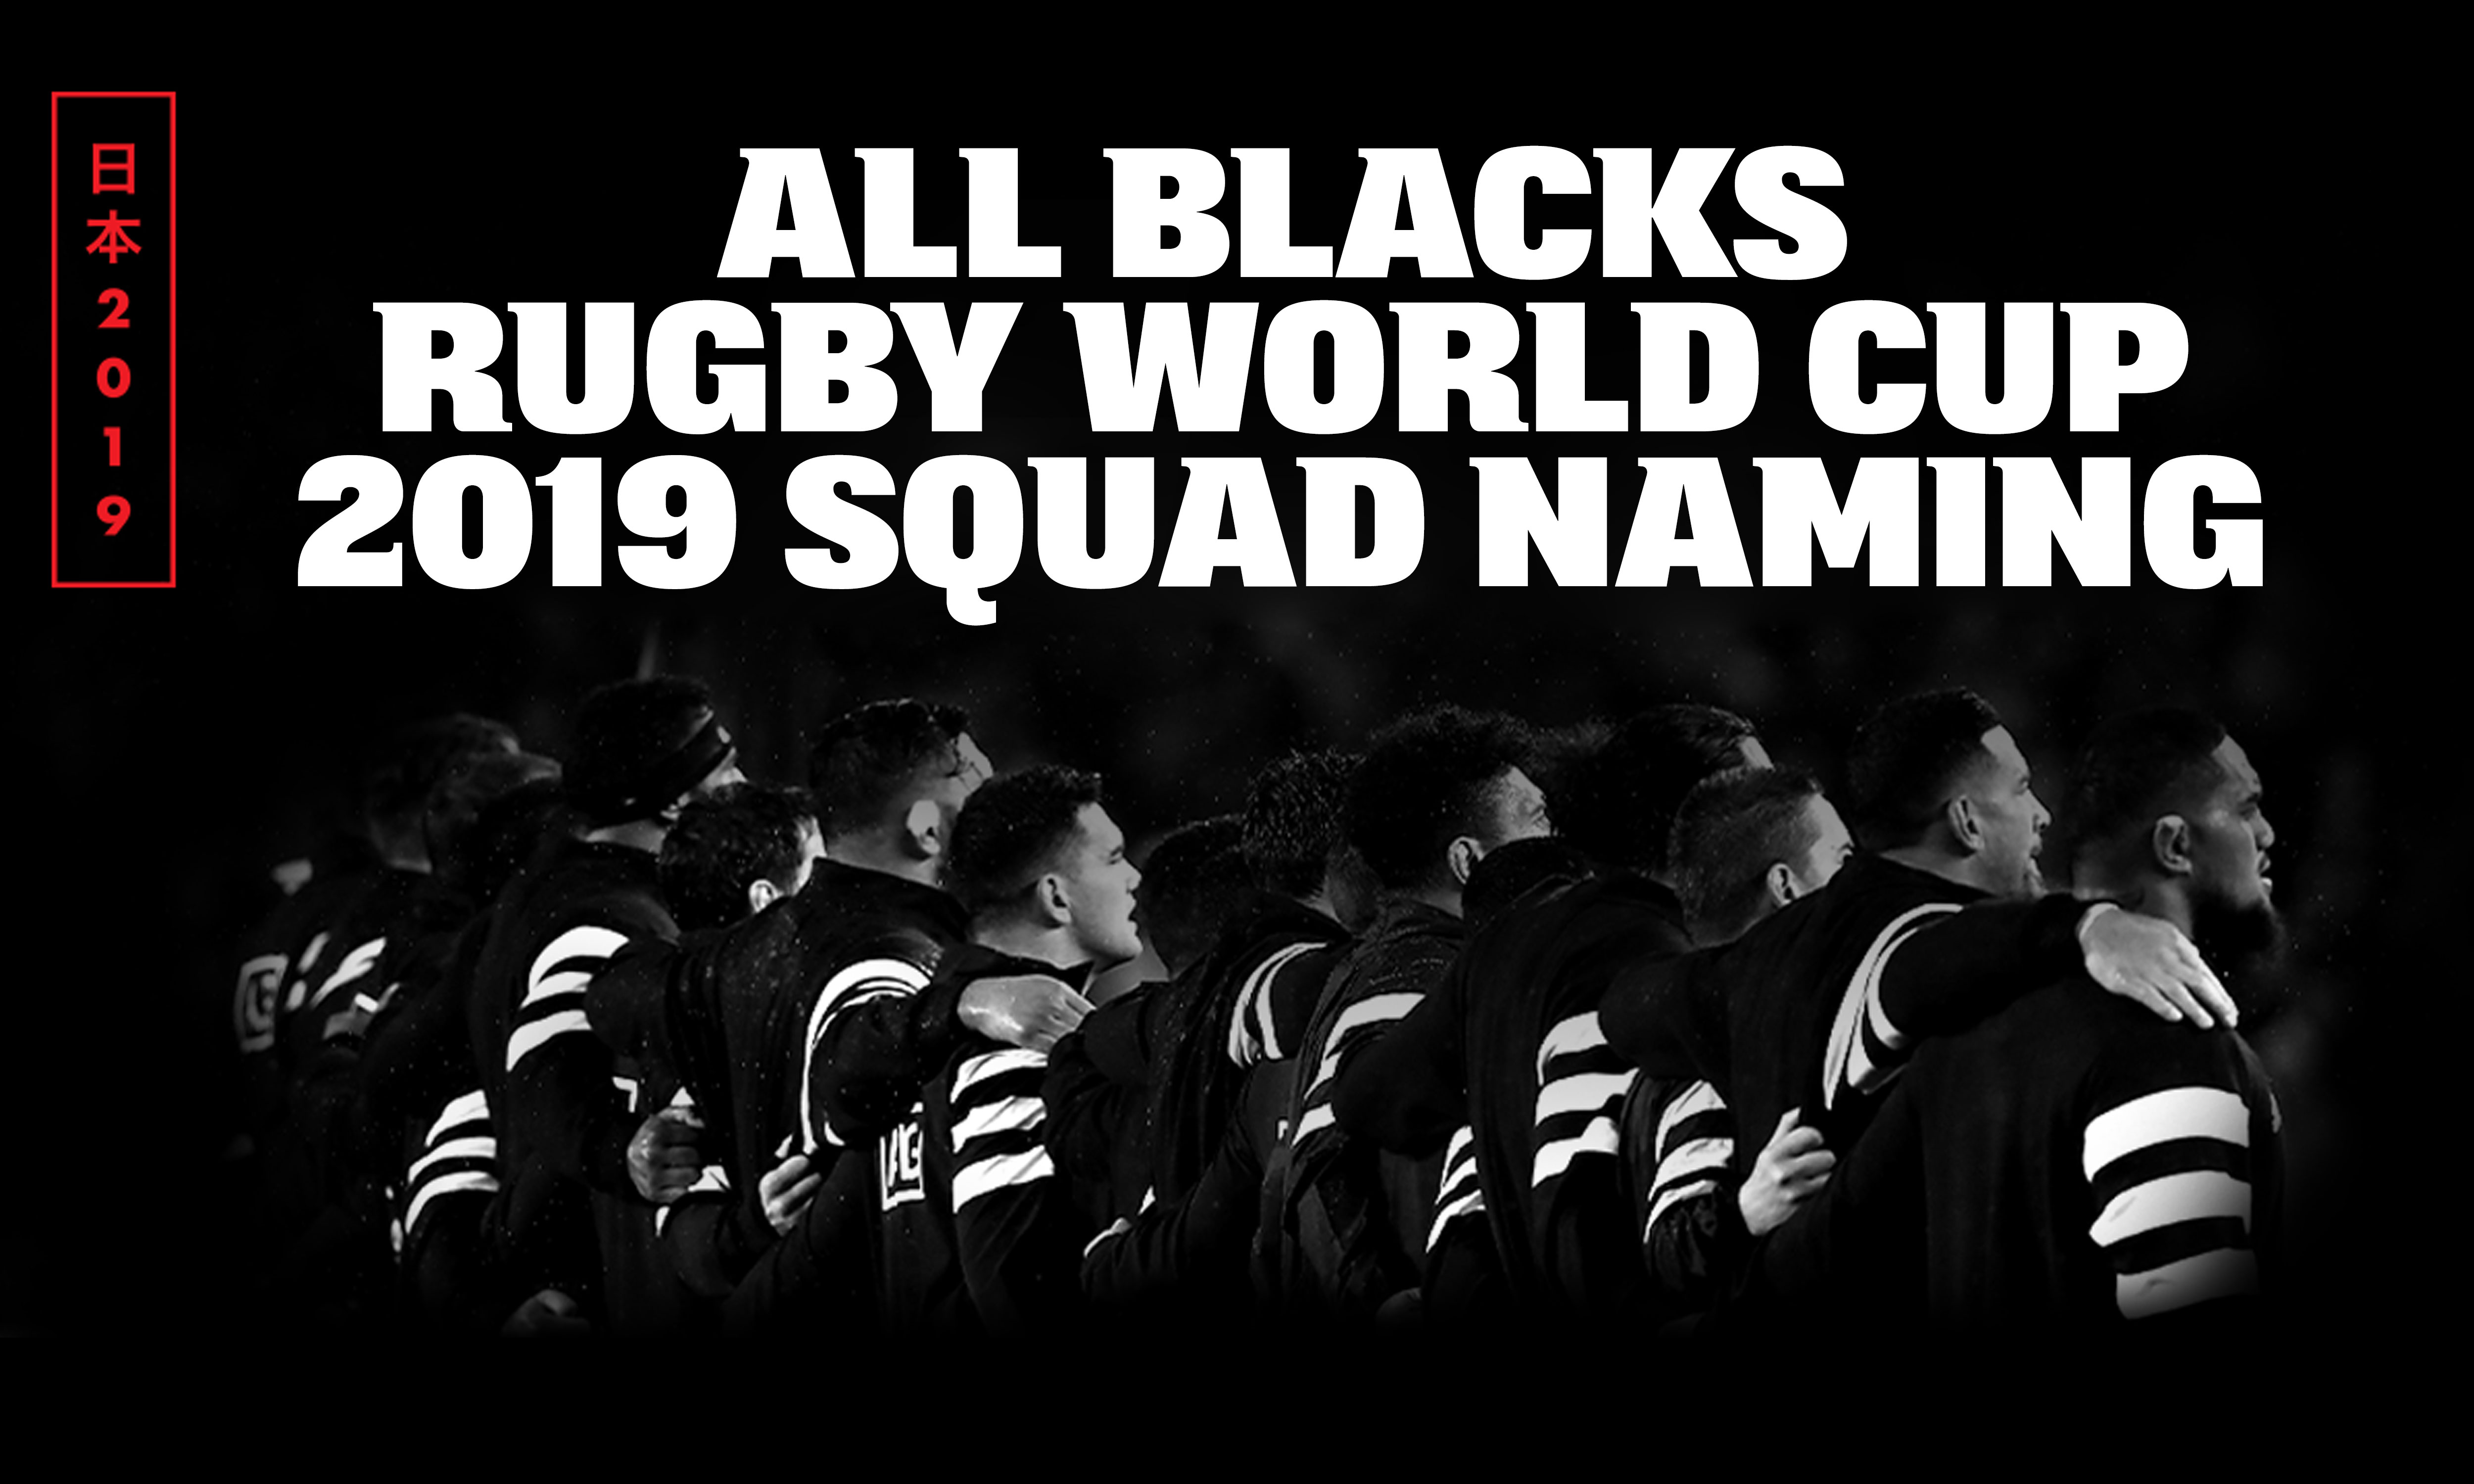 BOYS NEW ZEALAND RUGBY UNION ALL BLACKS T SHIRT BLACK WHITE AGE 3 4 5 6 7 8 9 10